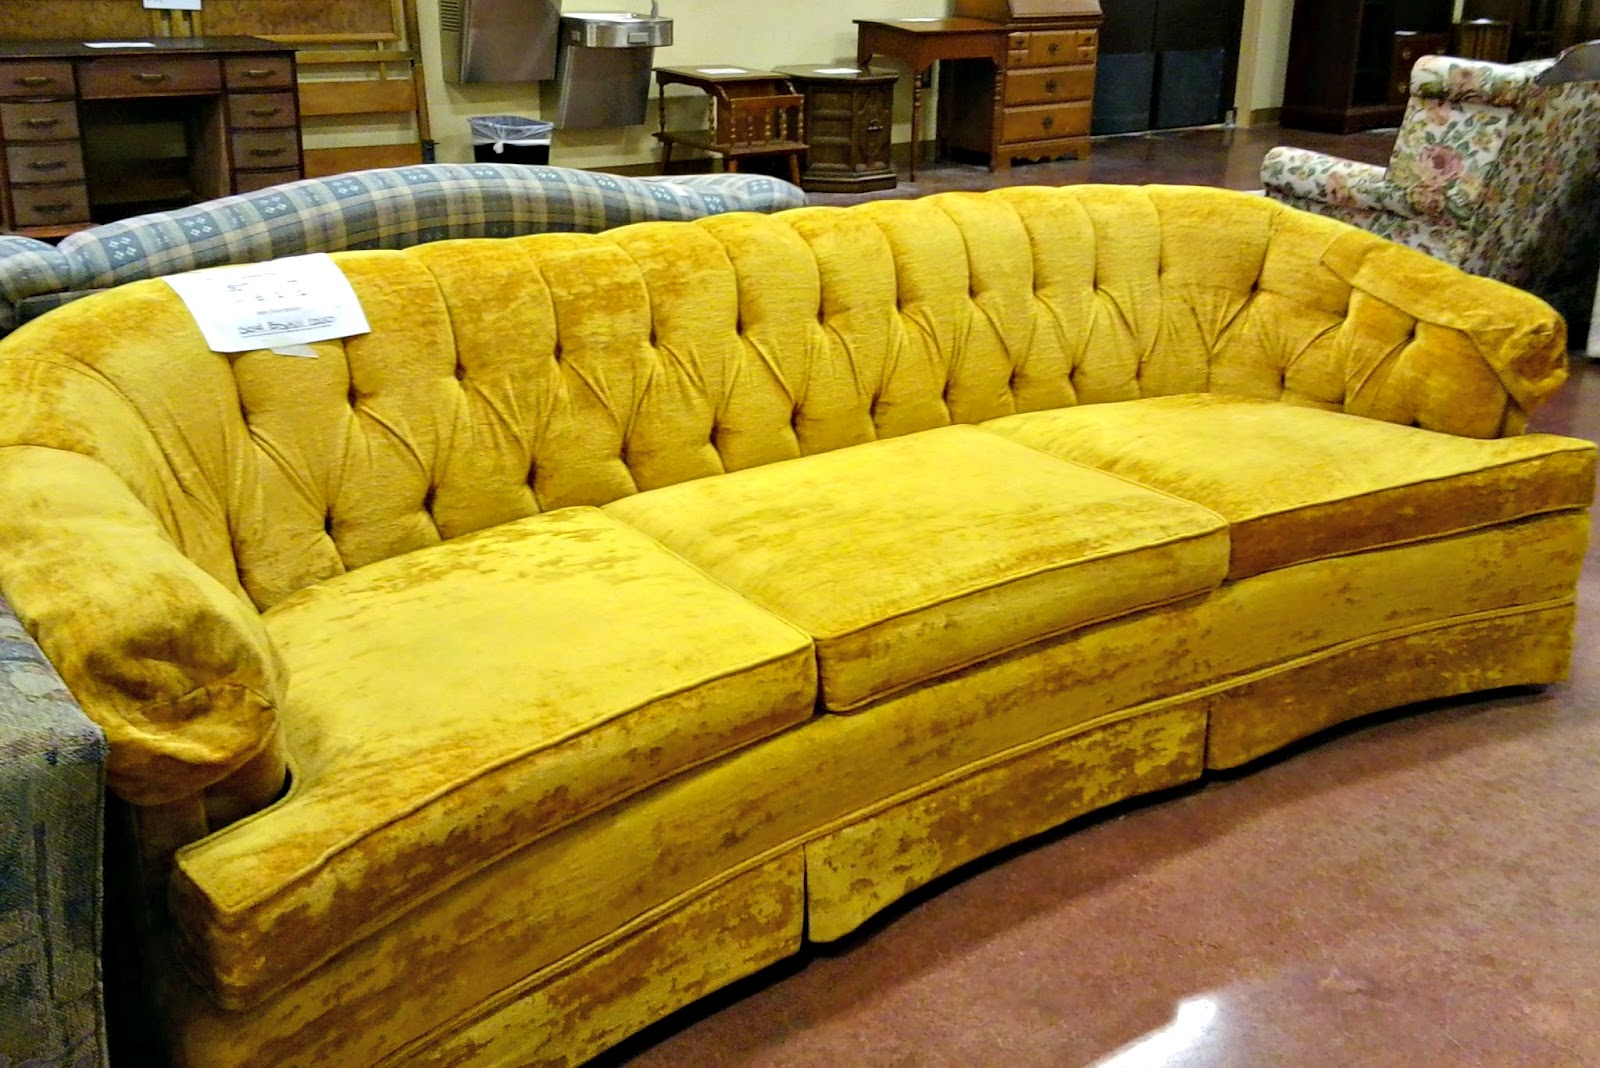 yellow+velvet+couch.jpg.jpg